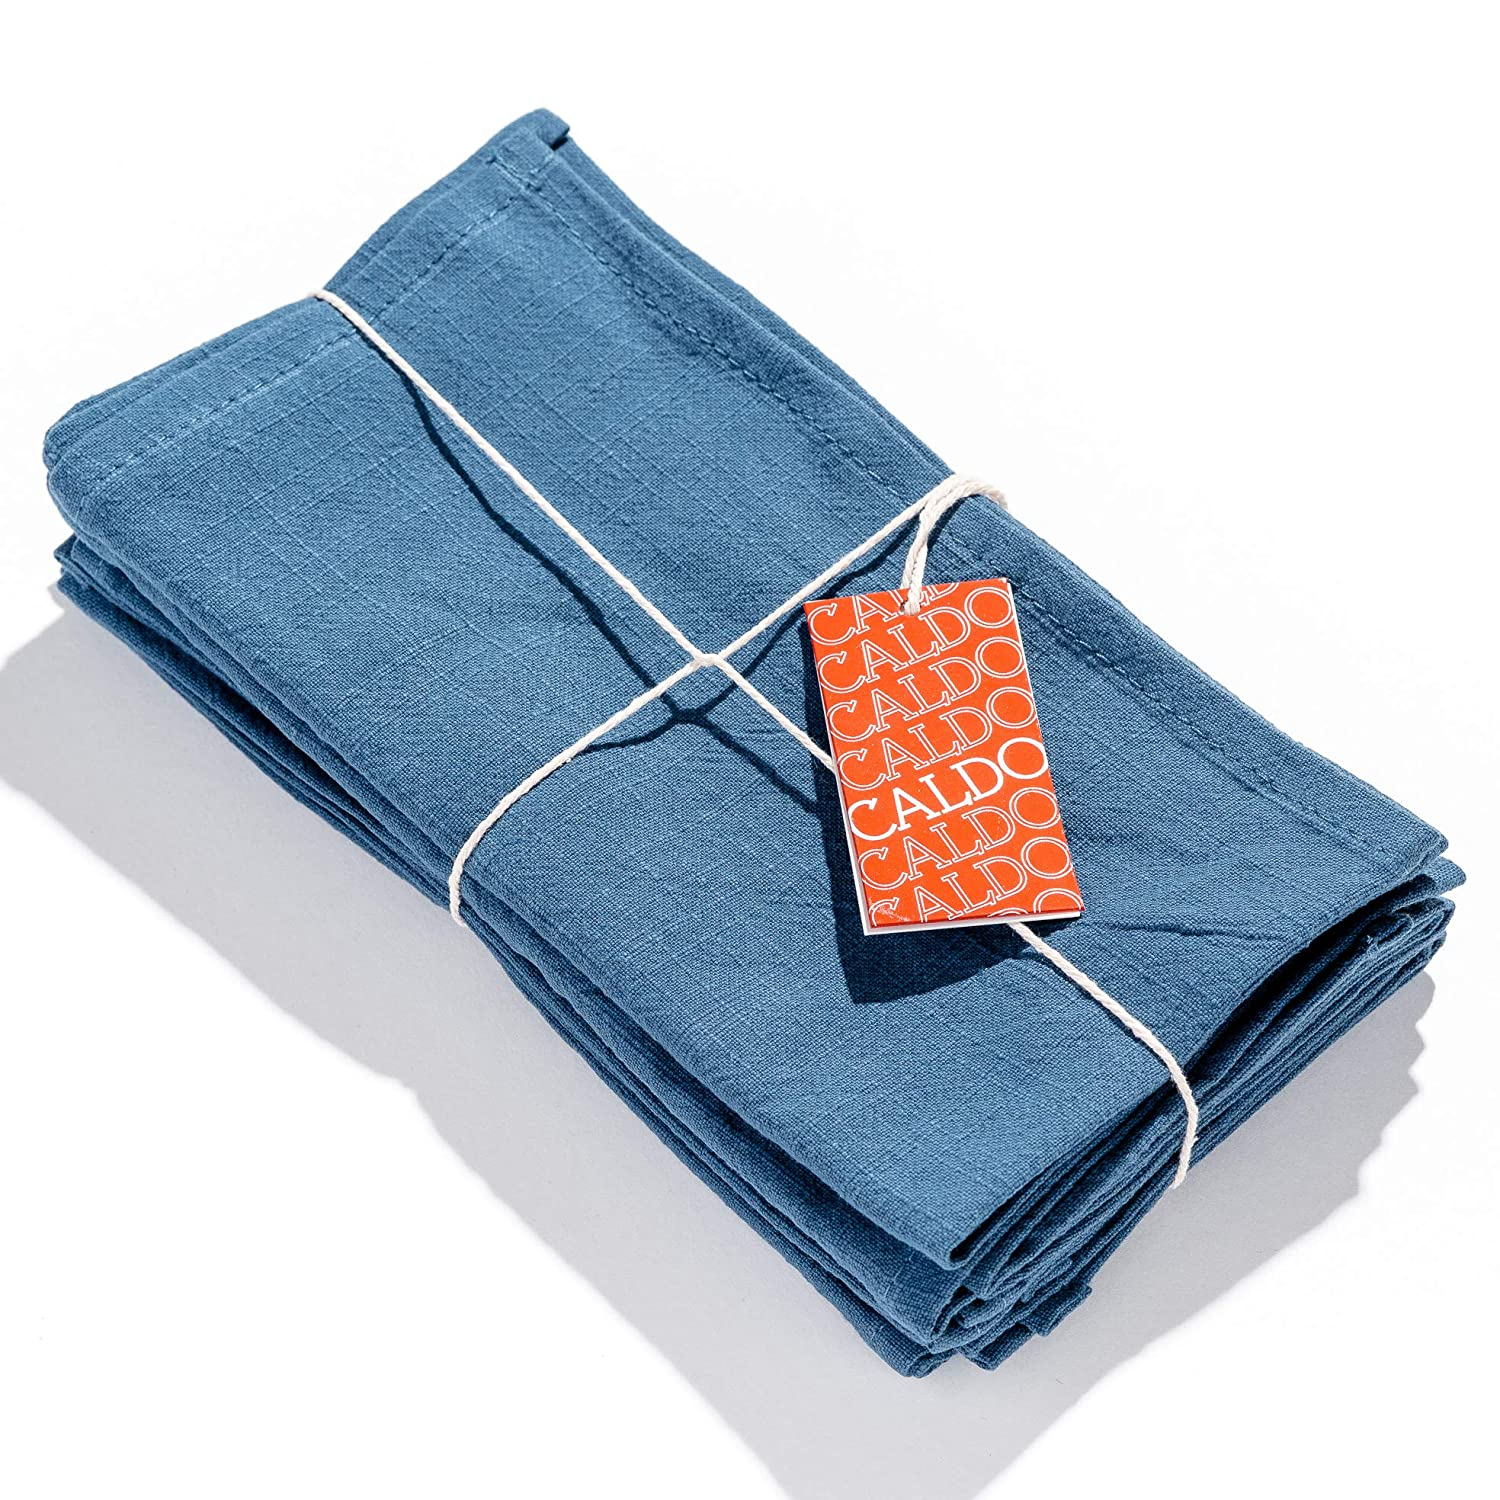 Caldo Linen Dinner Napkins - Soft and Durable Cloth - 4 Pack - 20x20 inch (Vintage Blue)